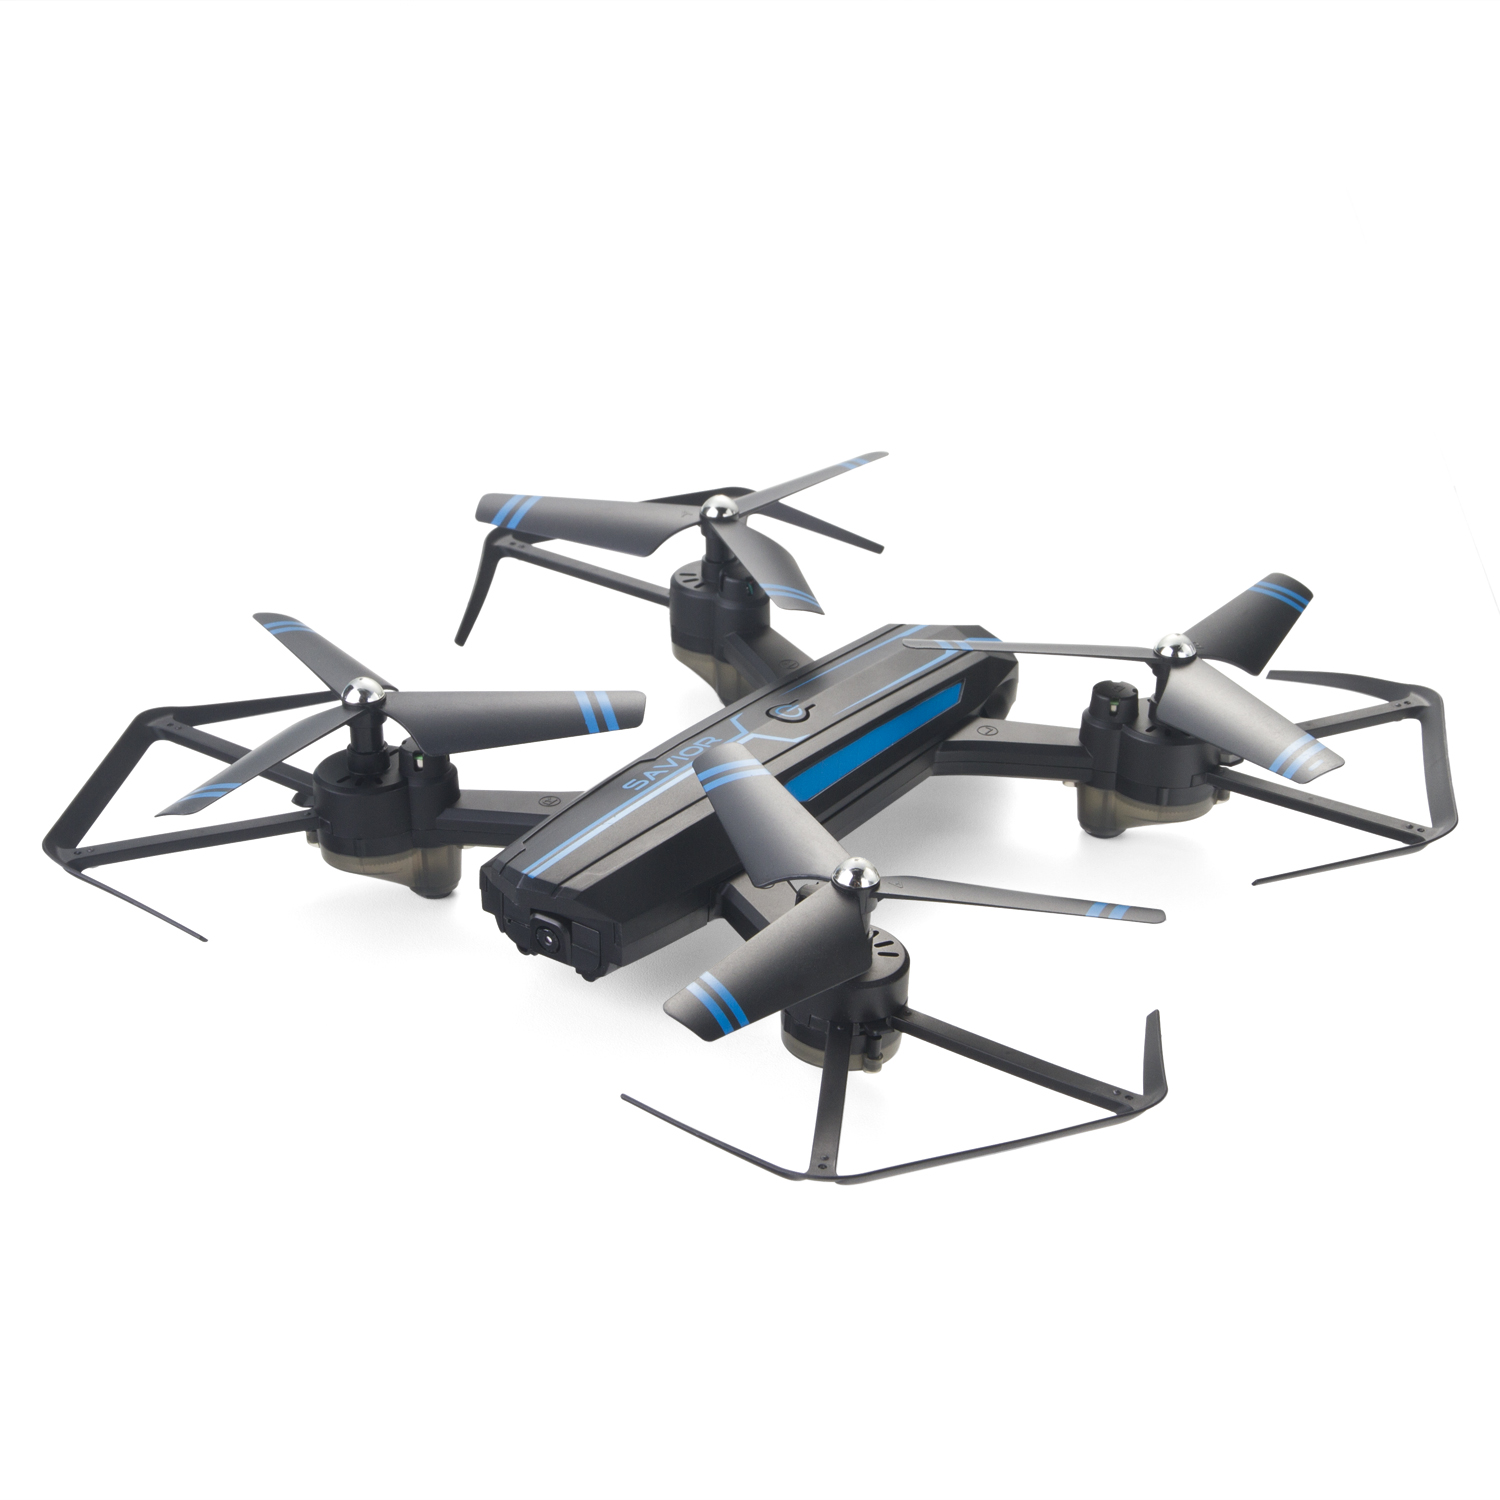 Upgrade 8809W <font><b>Drone</b></font> 0,3 PM 2,4G <font><b>WIFI</b></font> Faltbare RC <font><b>Drone</b></font> Spielzeug mit HD Kamera Helicopterfor kinder image